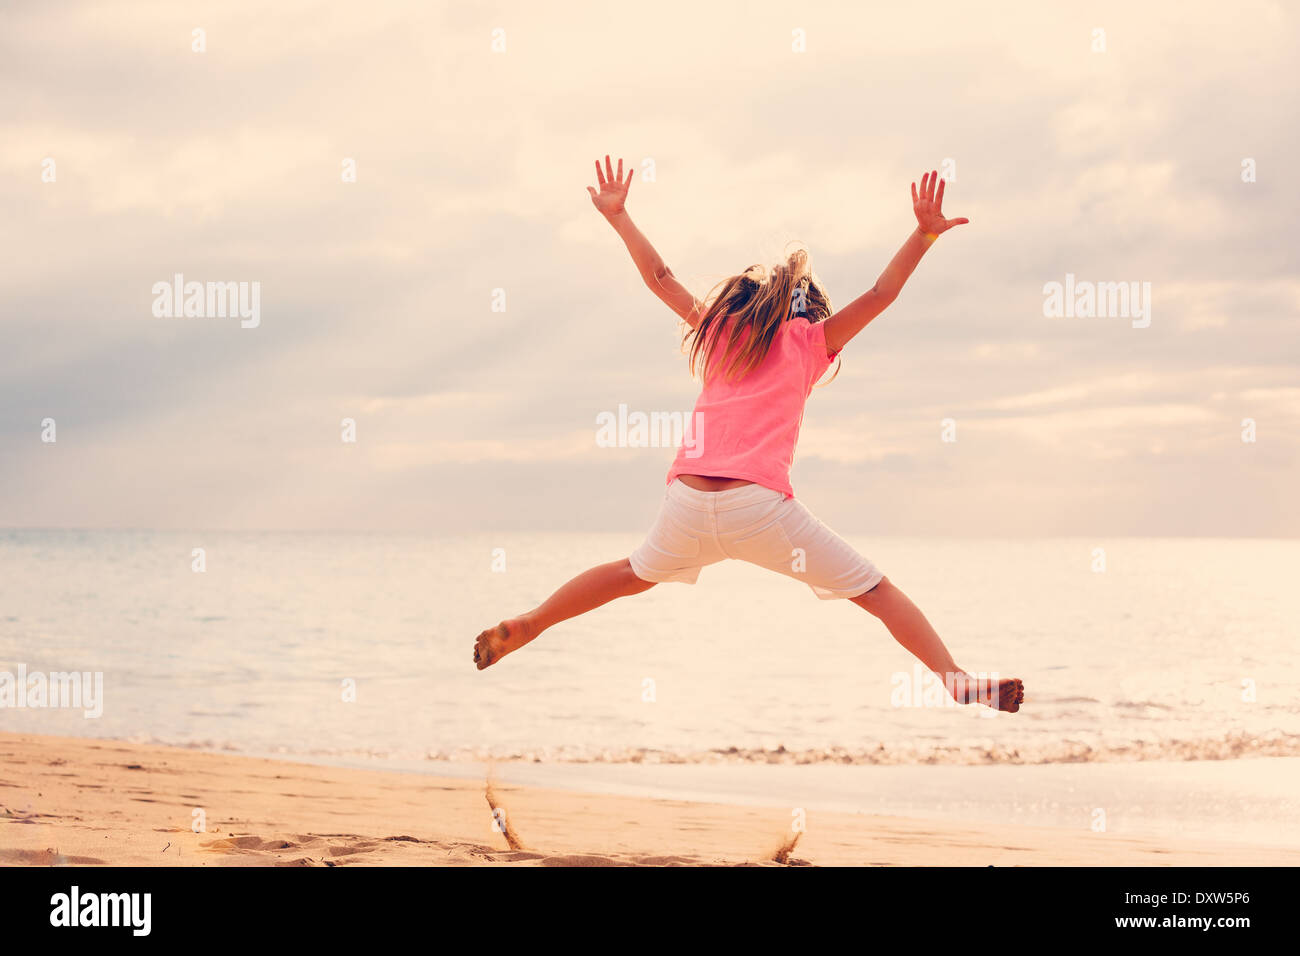 Happy Young Girl Jumping For Joy on the Beach at Sunset - Stock Image